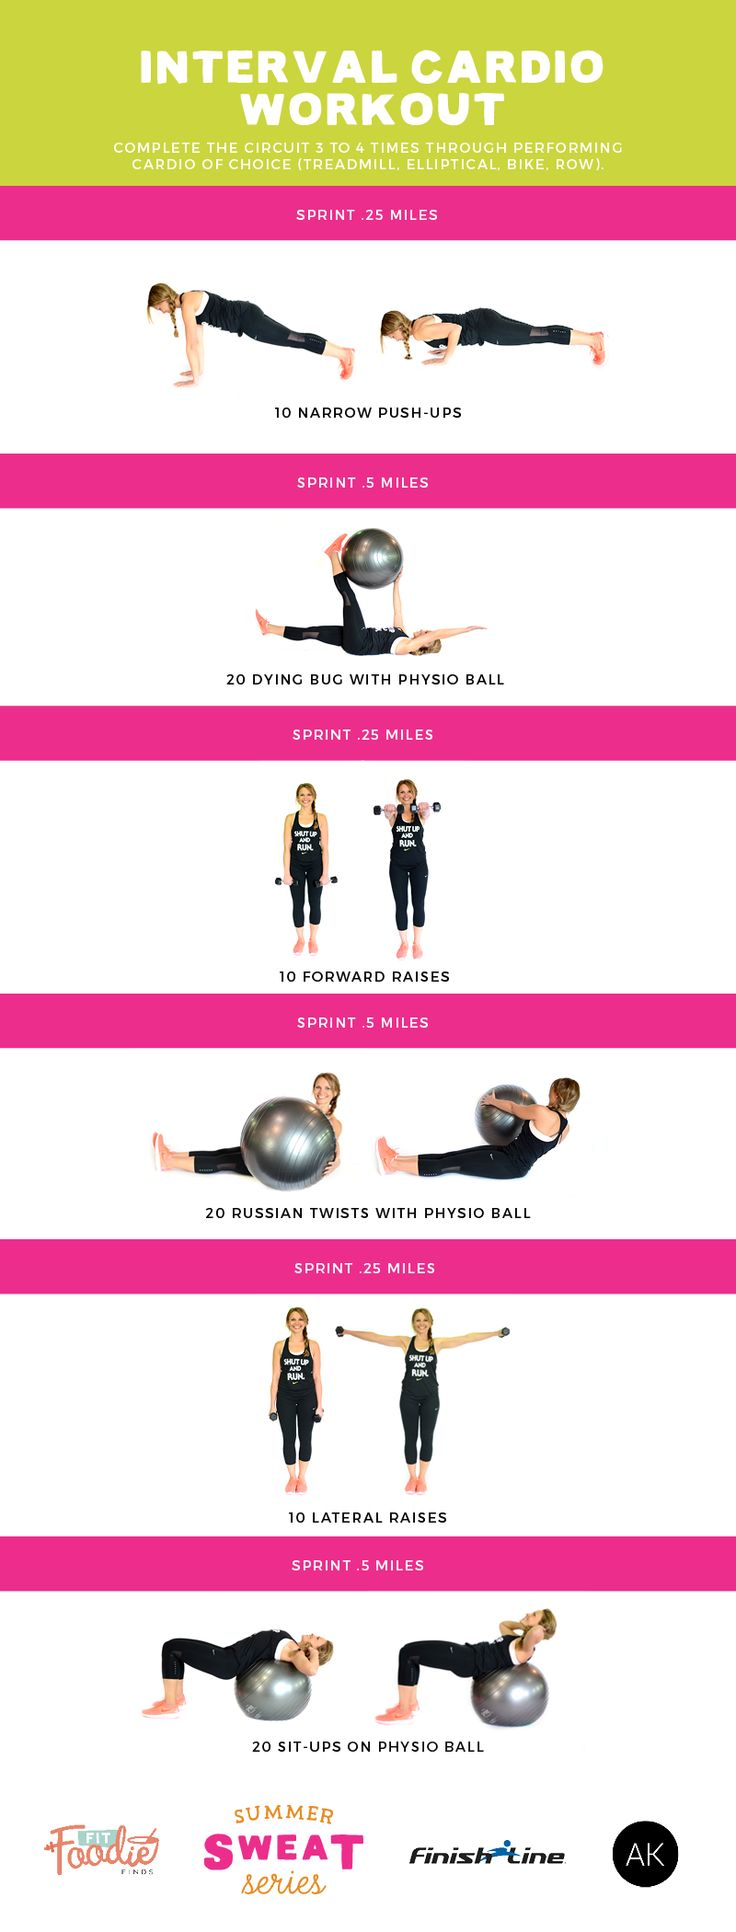 AMAZING Full body interval cardio workout! Challenging, fun and a great overall body #workout for fat burning! #SummerSWEATSeries